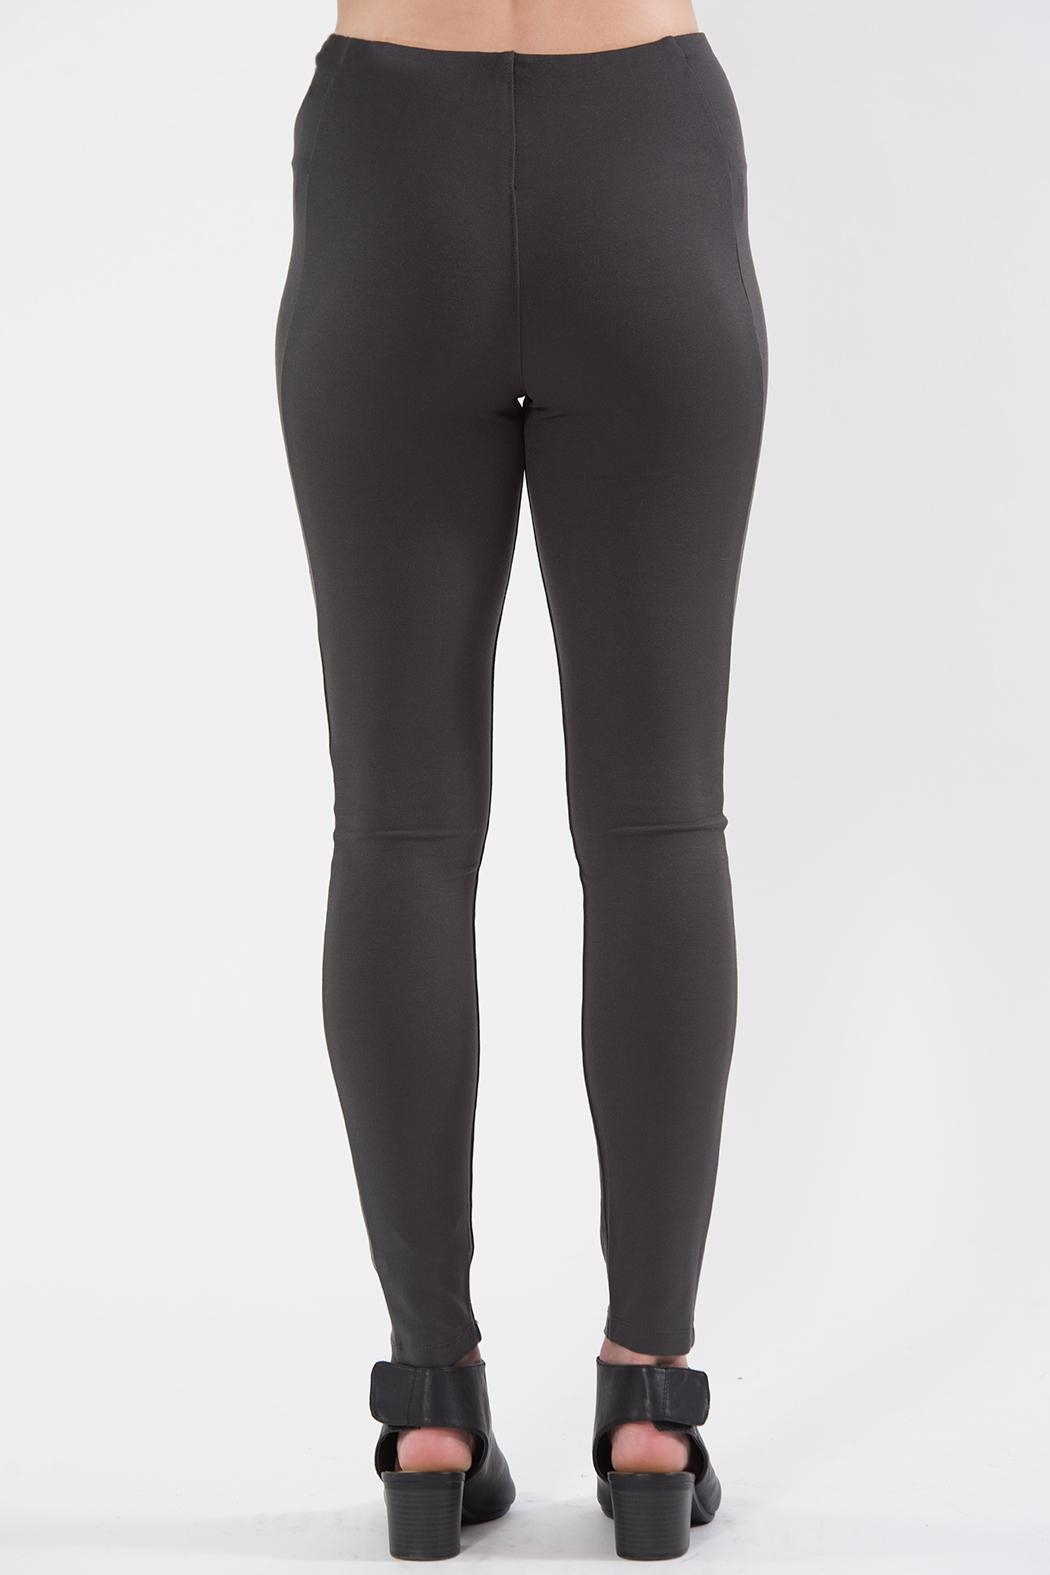 Liverpool Jeans Company Legging Style Pants - Front Full Image